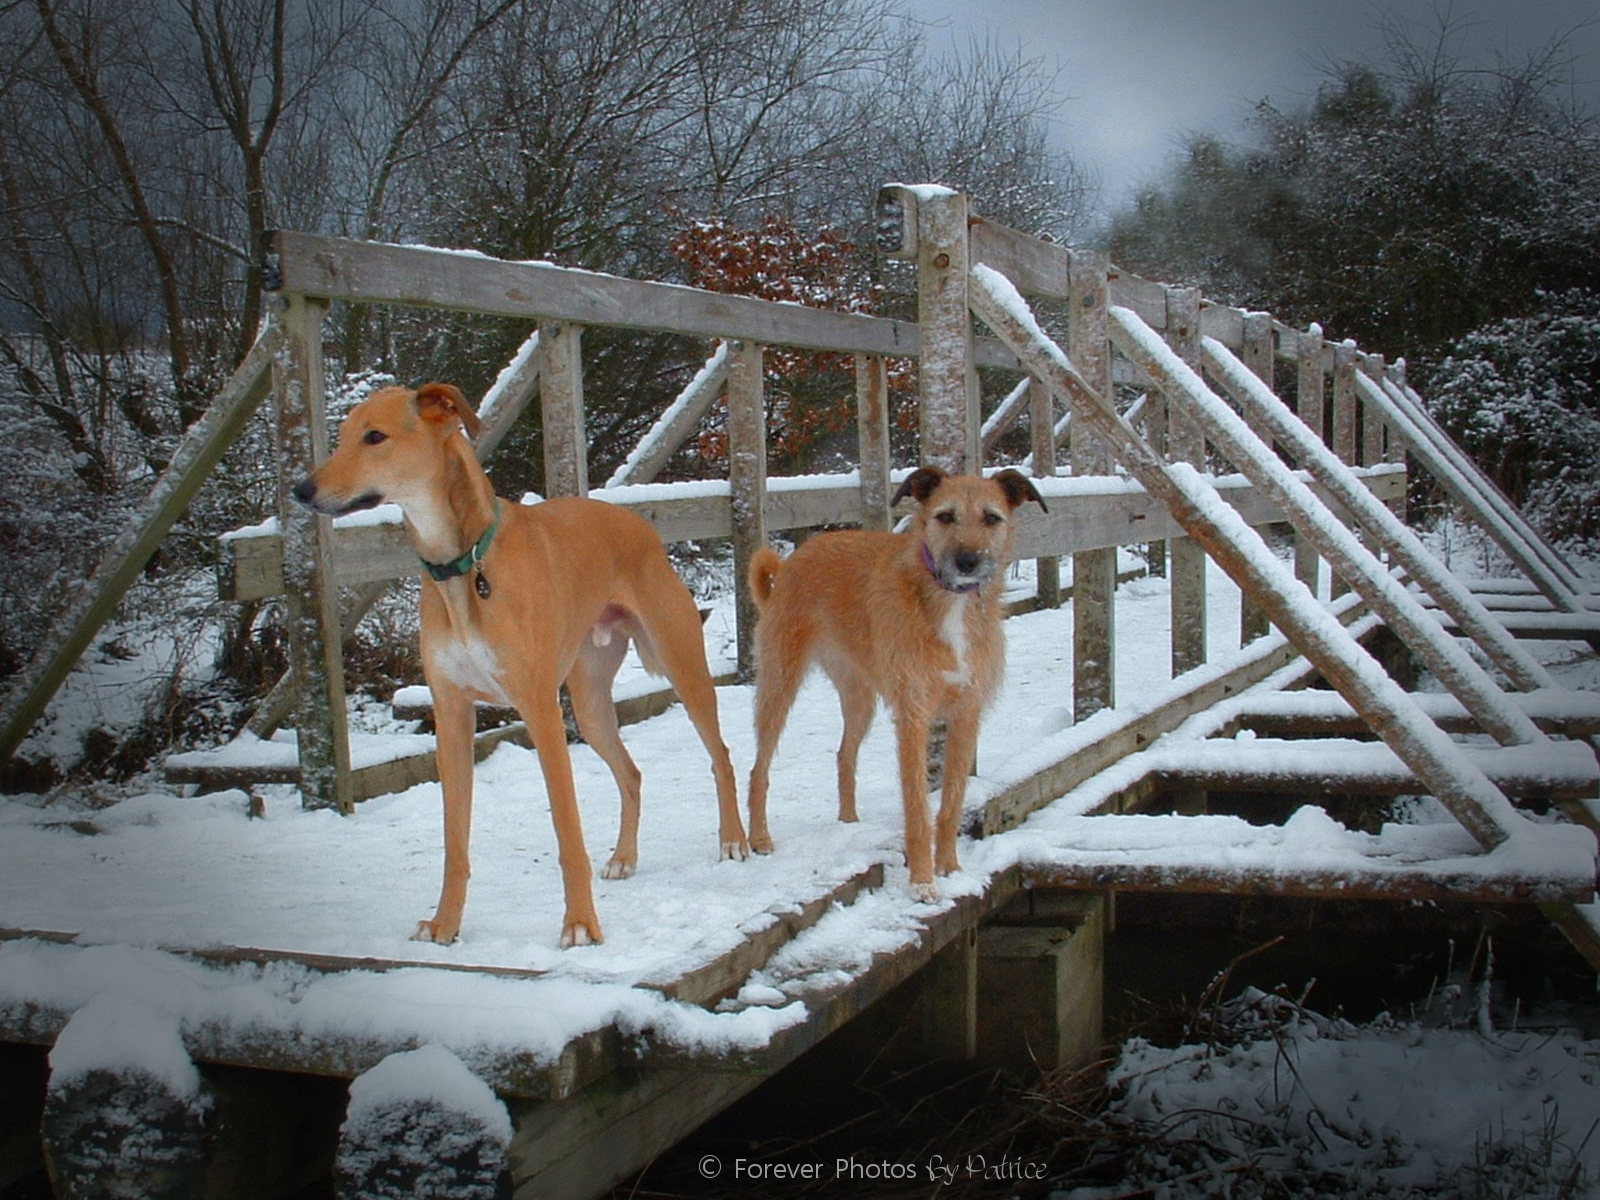 Megan & Monti - Lurchers